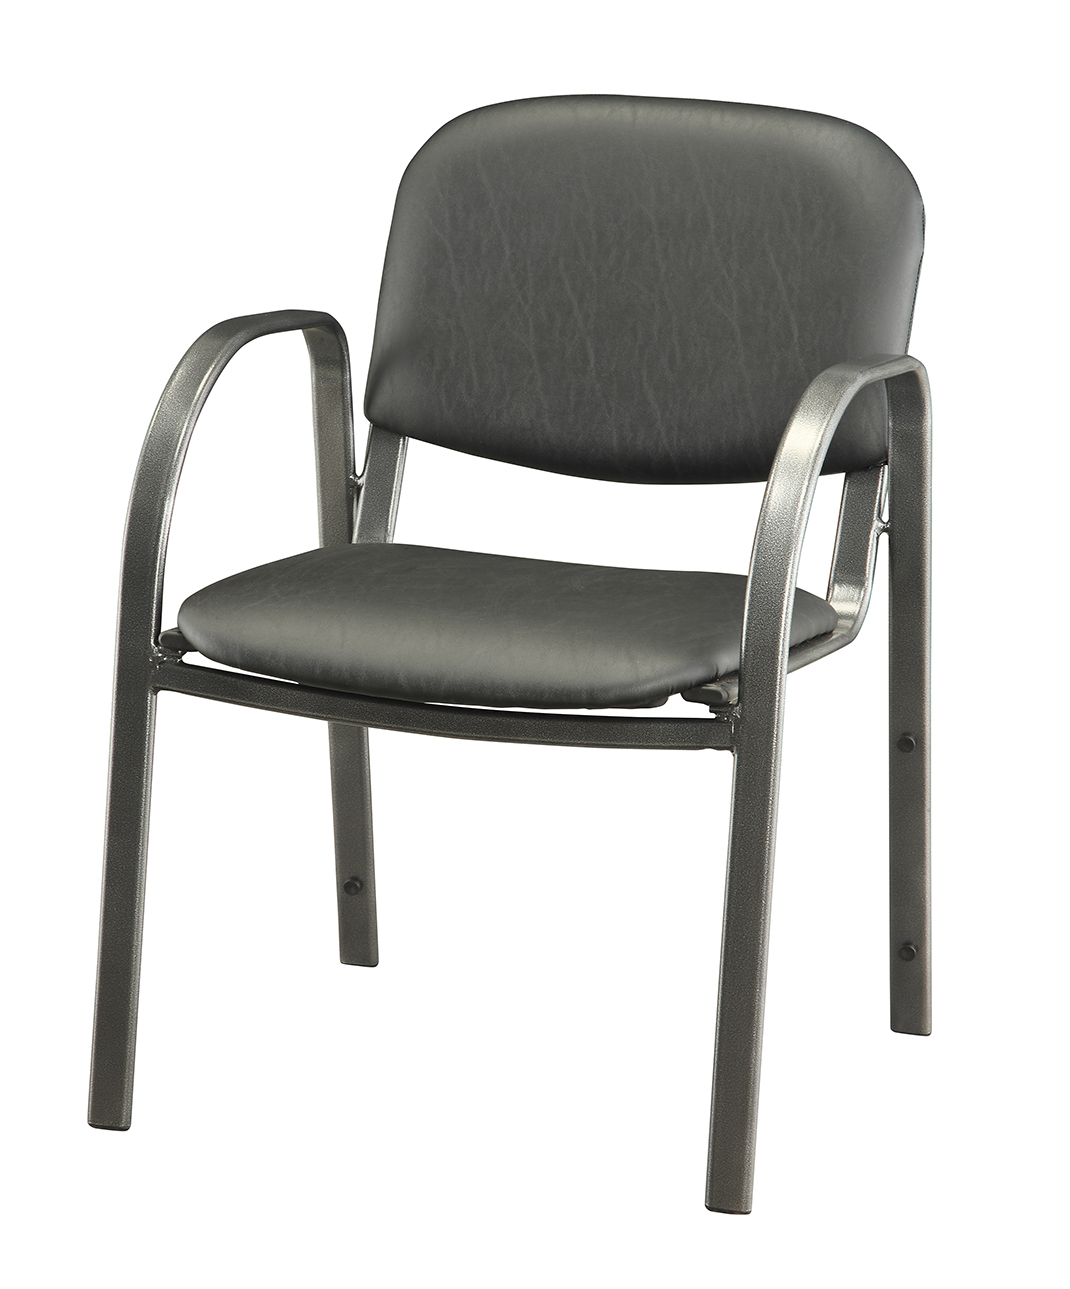 products categories chairs archive | office liquidators | new and